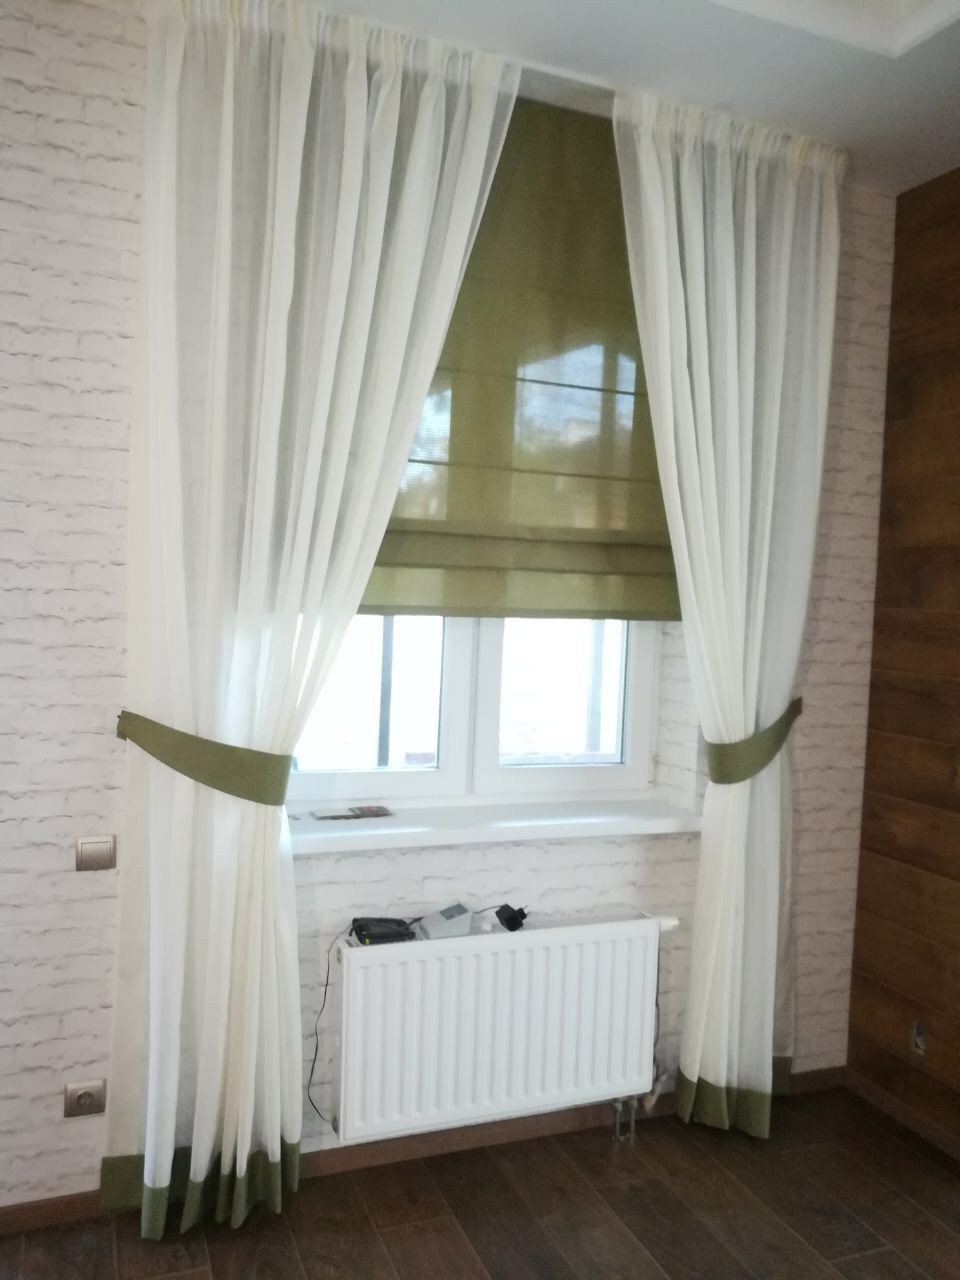 Curtains for Bedroom Windows with Designs Luxury Pin About Curtains Curtains with Blinds and Curtain Designs